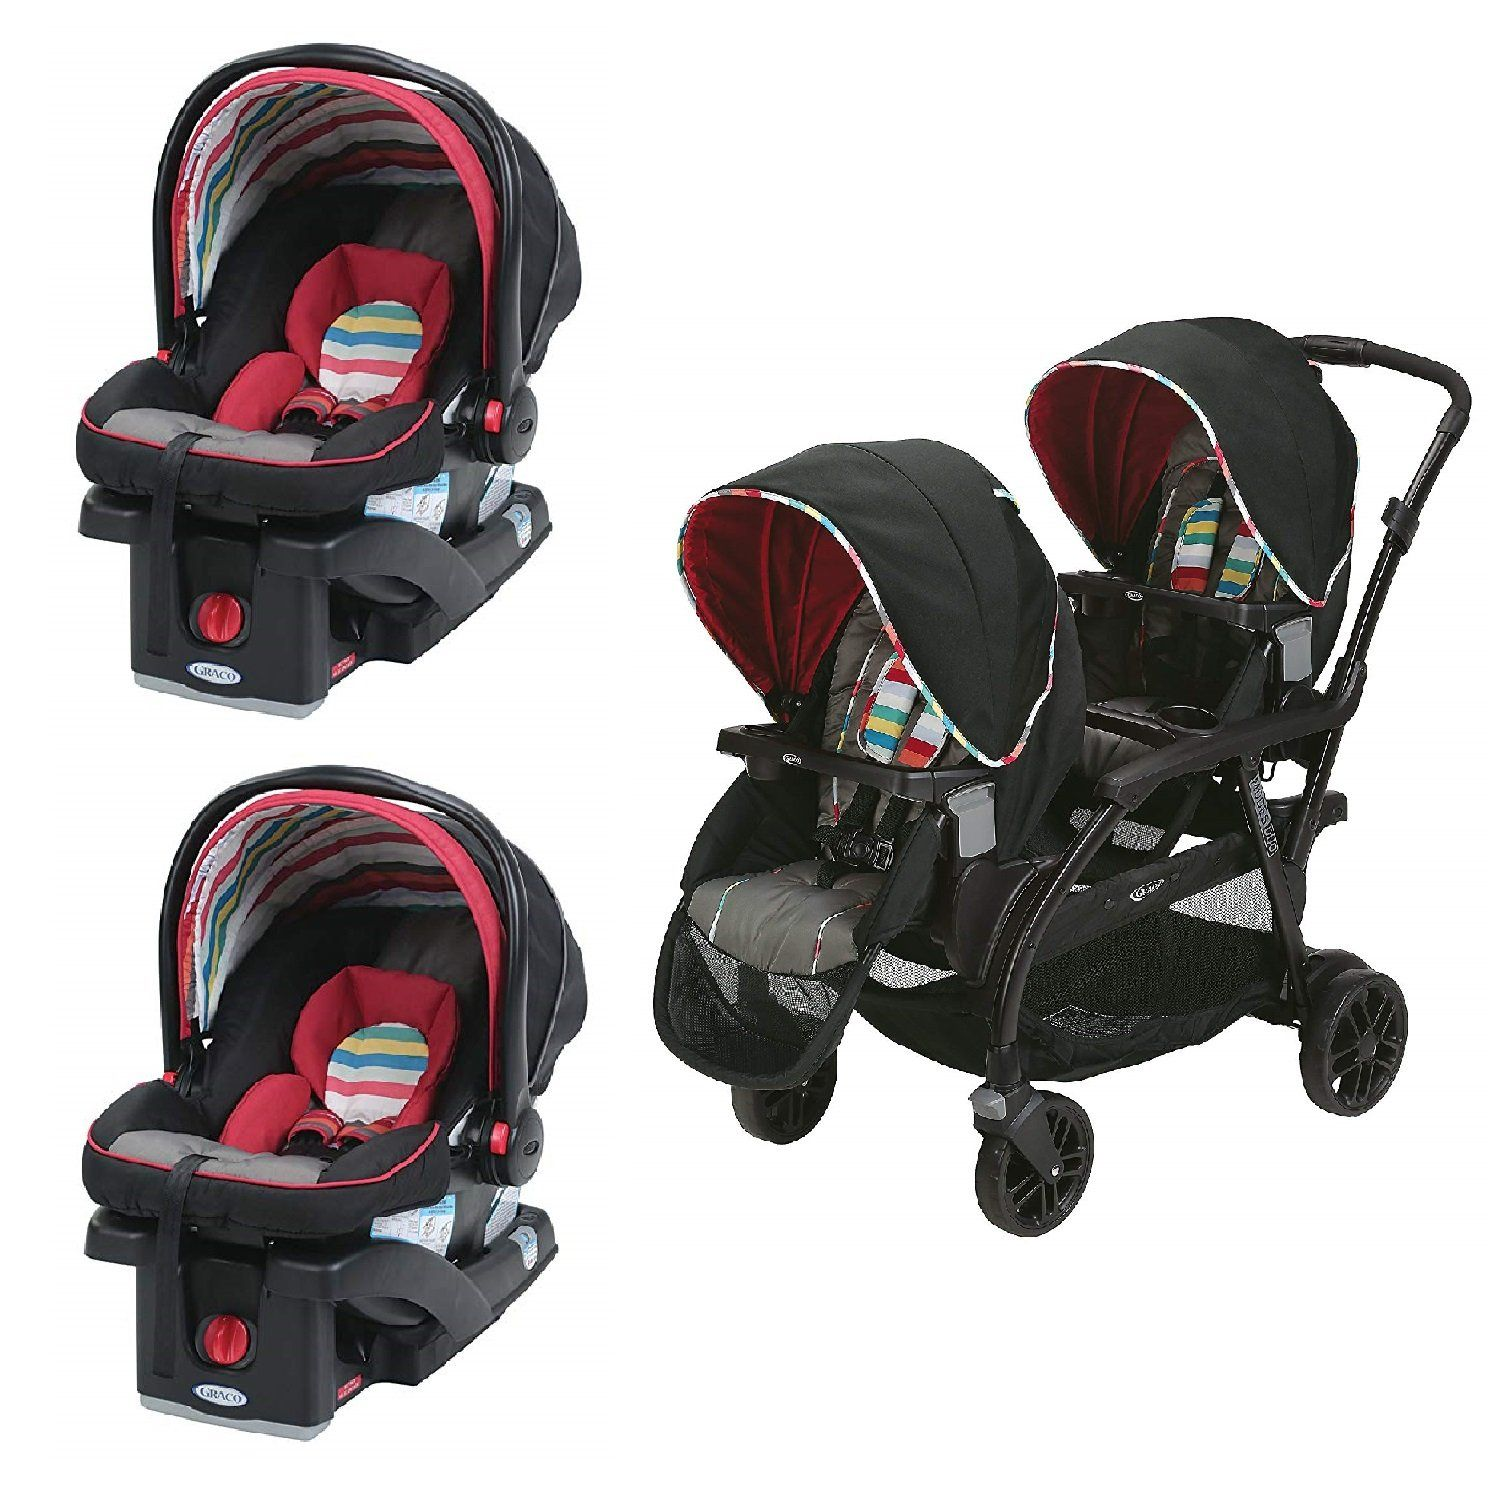 b1b5cfd7b6985 Graco Red Double Seated Twin Stroller with 2 Car Seats Travel System ...